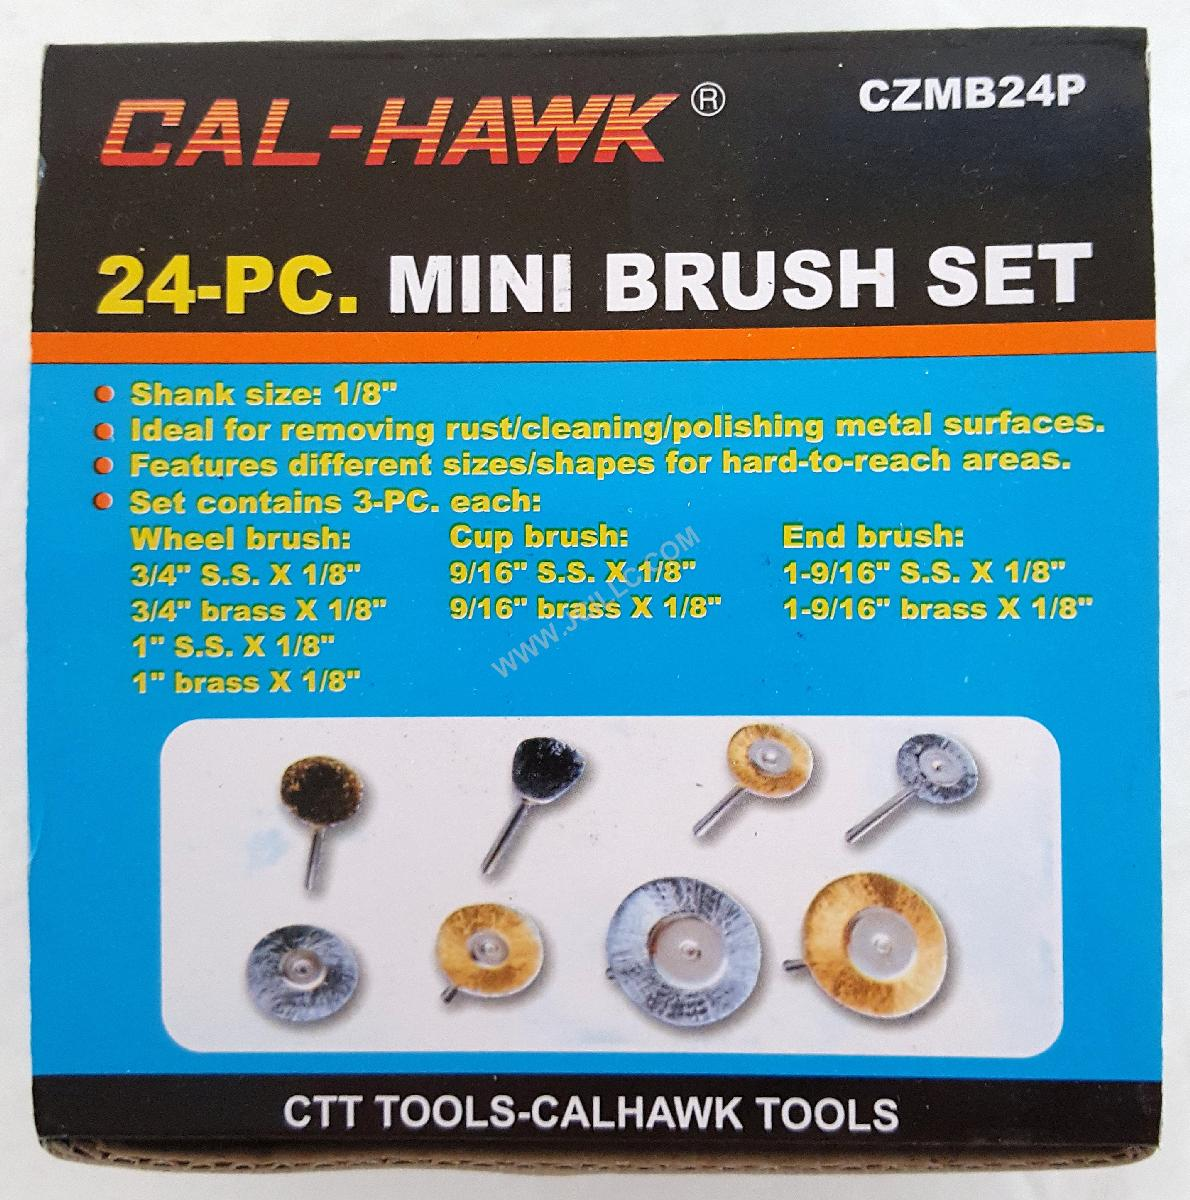 24PC 1/8 INCH SHANK MINI WIRE BRUSHES, Tools Cutting Tools Wire ...